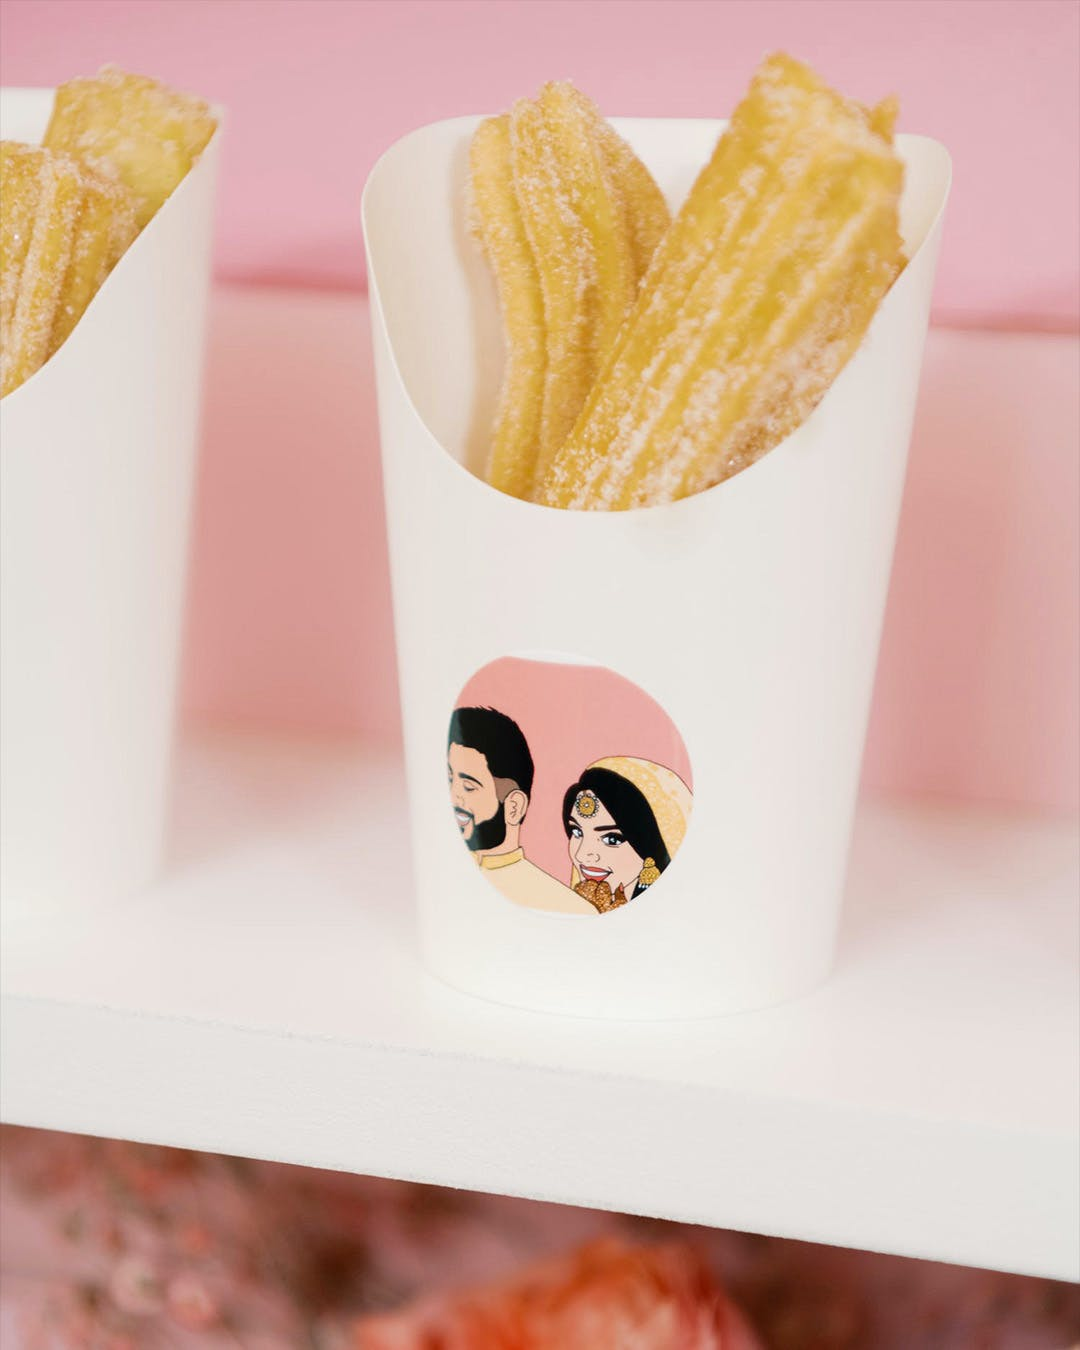 Churros in white packaging with cartoon version of engaged couple's face for engagement party | PartySlate